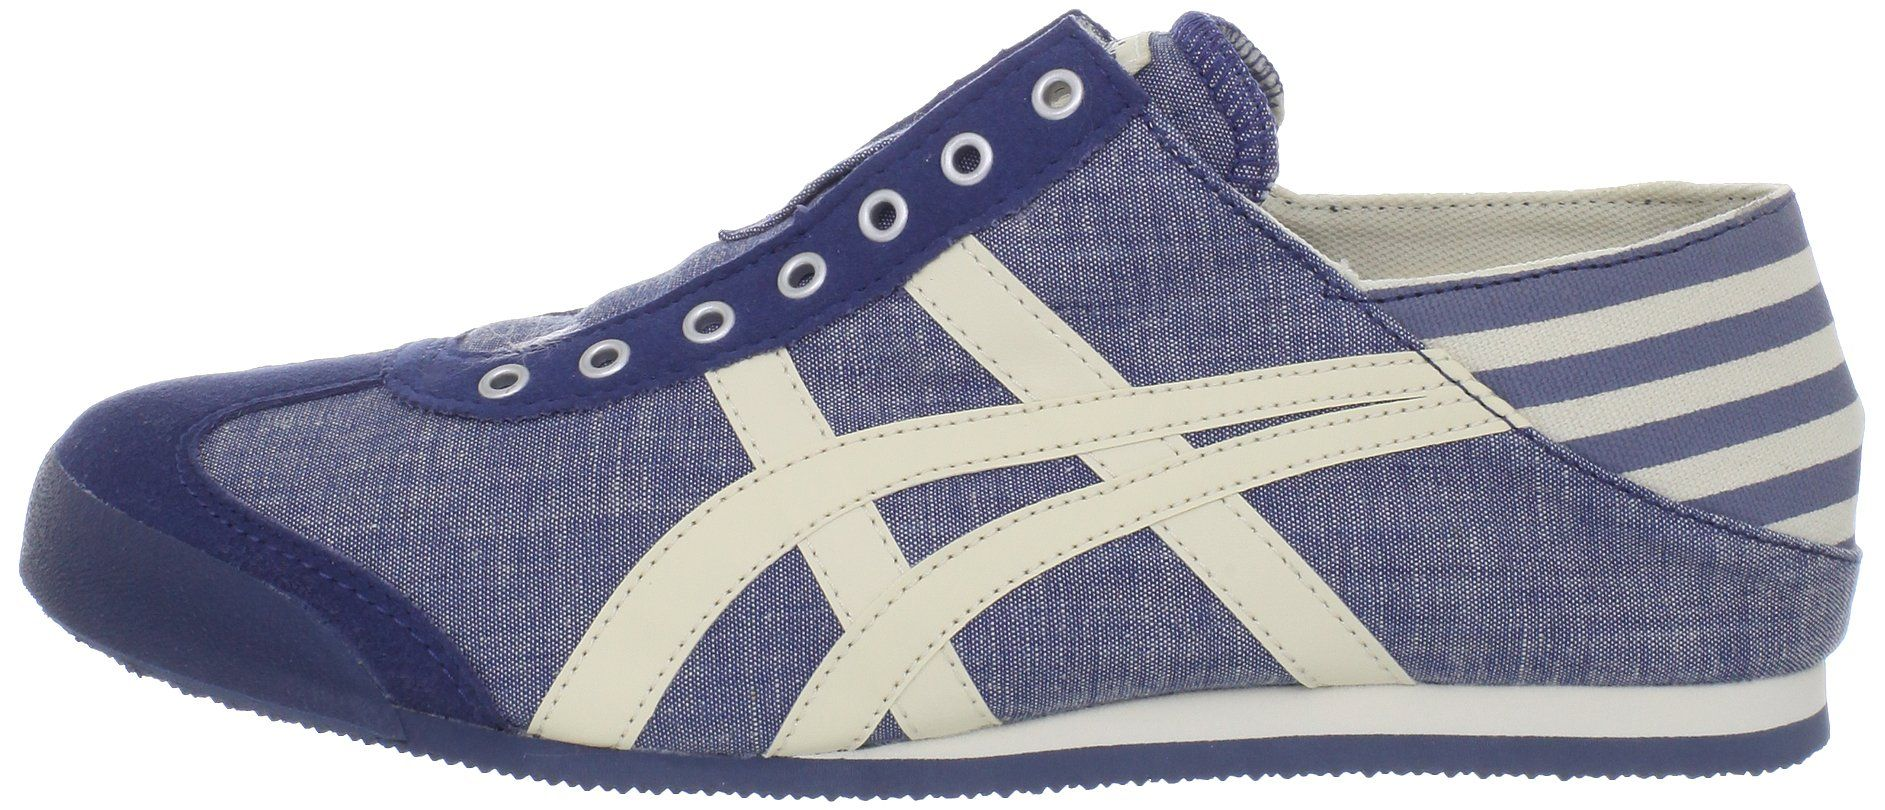 22af9cec64714 Amazon.com: Onitsuka Tiger Mexico 66 Paraty Fashion Sneaker, Blue ...